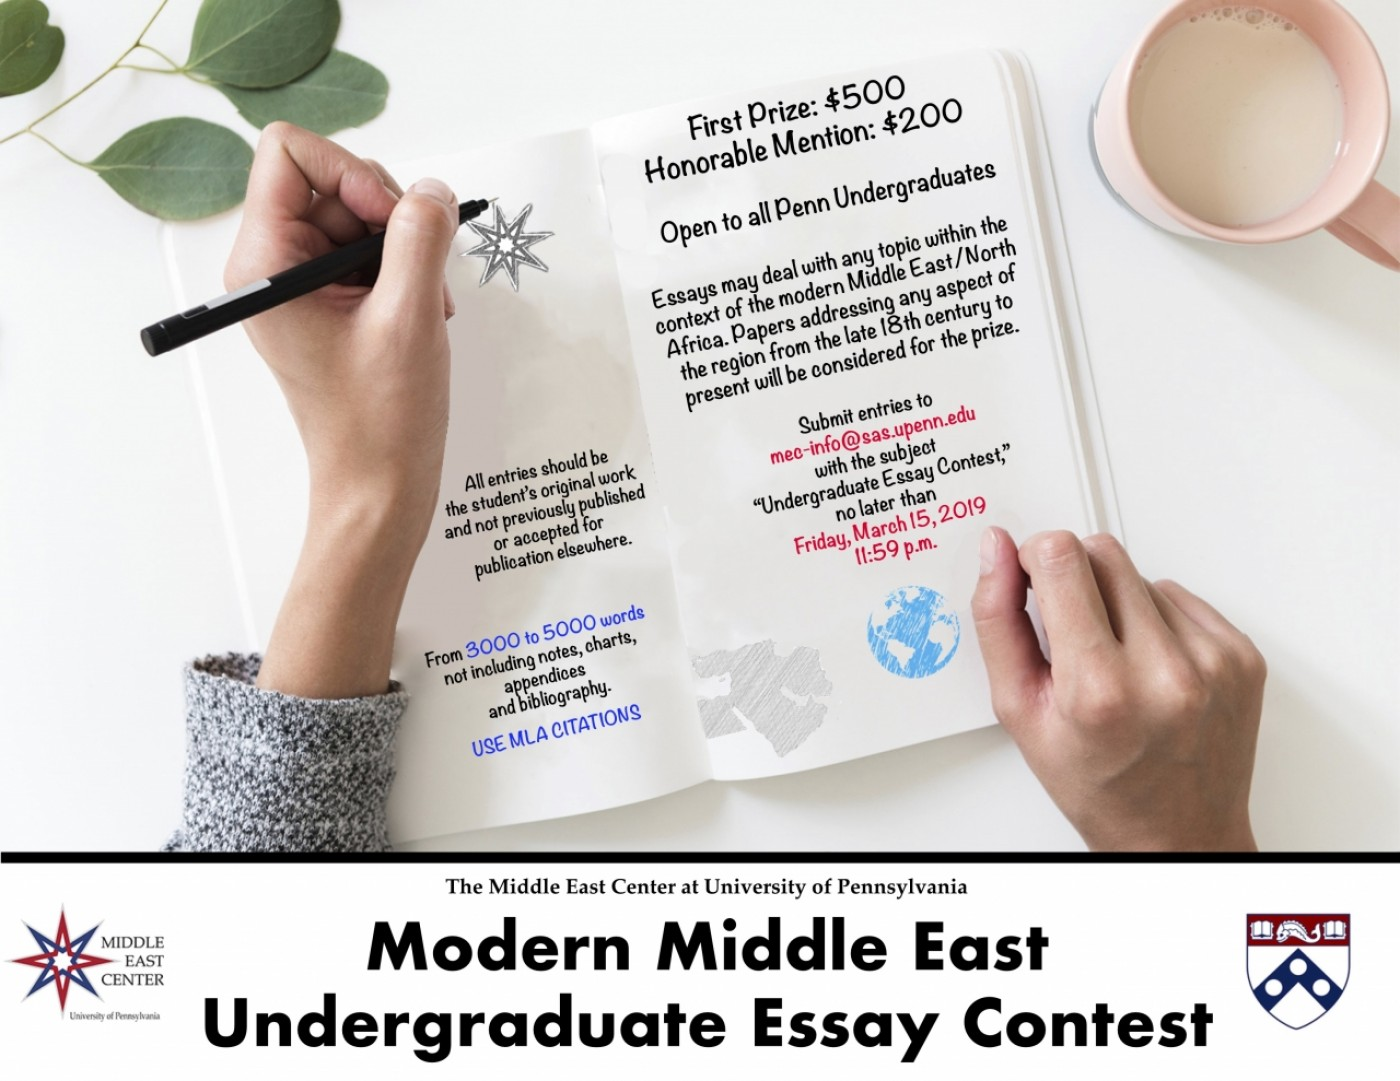 009 Essay Example Undergradessaycontest Remarkable Upenn Prompt 2018 College Confidential 1400